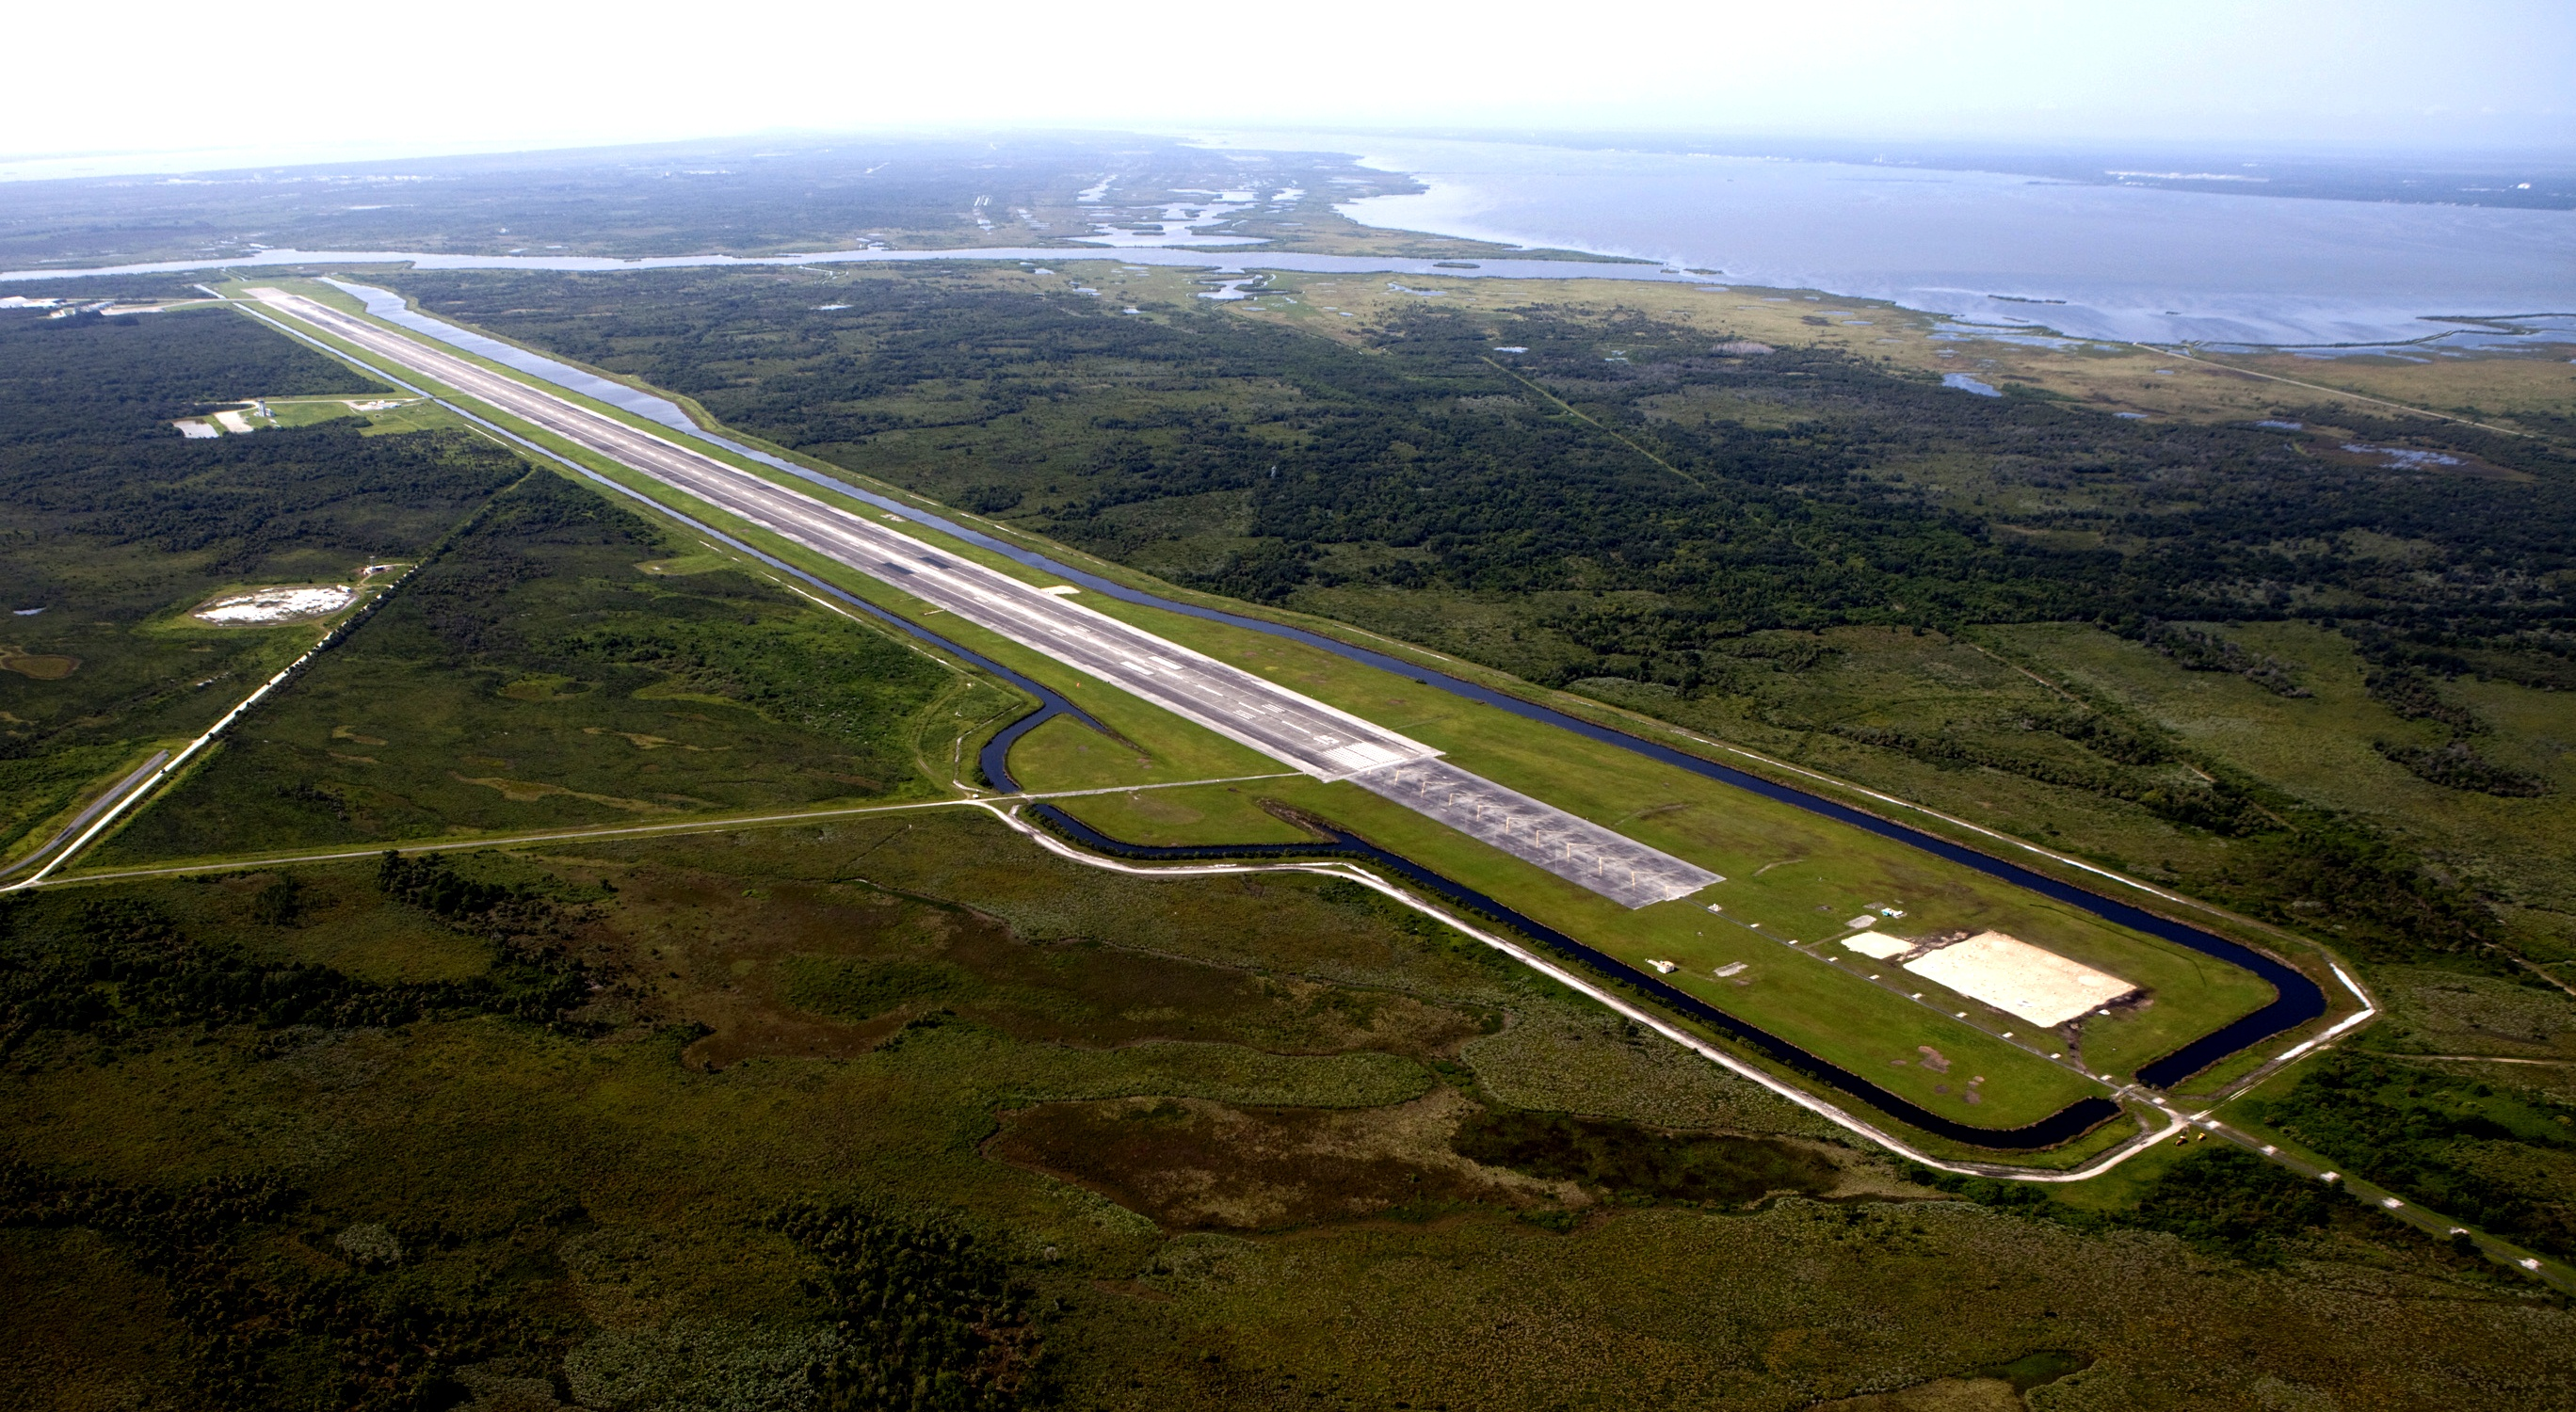 The 15,000-foot long Shuttle Landing Facility at the Kennedy Space Center was photographed in this aerial view on July 19, 2012. What once served as the runway where space shuttles returned to Earth may soon be the site of vehicles launching horizontally on sub-orbital space flights. Image Credit: NASA/Kim Shiflett